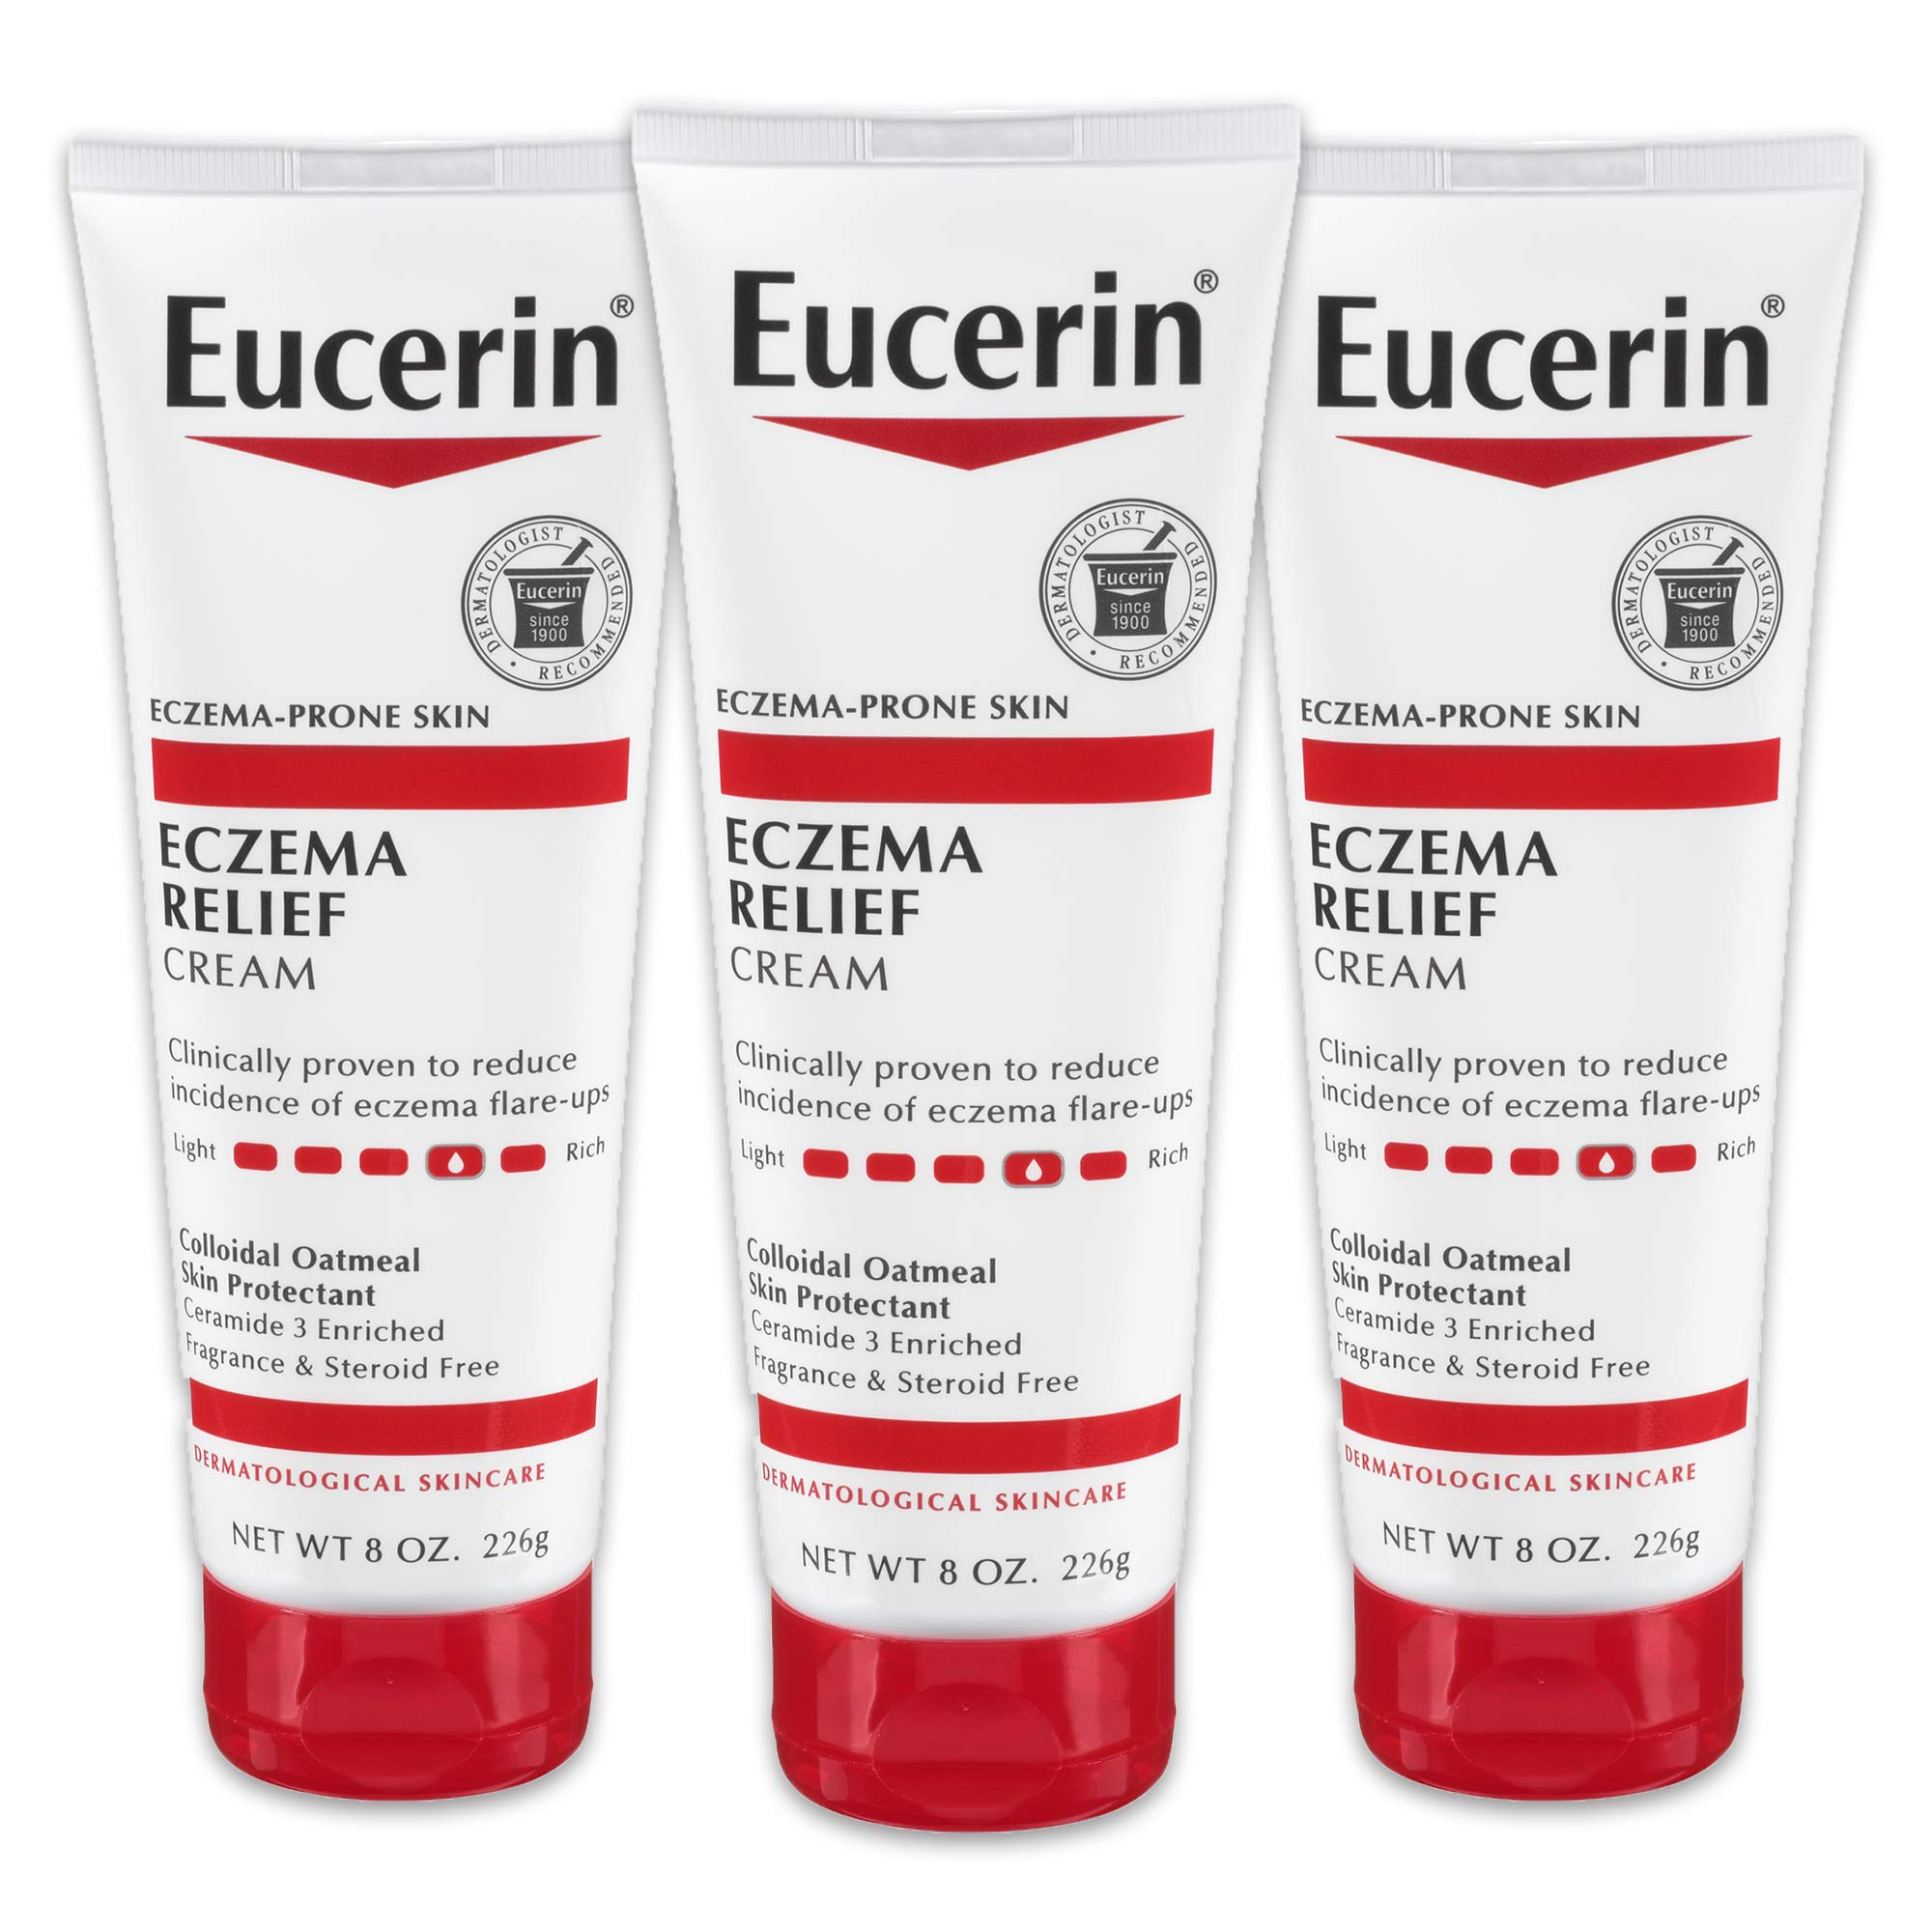 Eucerin Eczema Relief Cream - Full Body Lotion for Eczema-Prone Skin - 8 oz. Tube (Pack of 3) by Eucerin